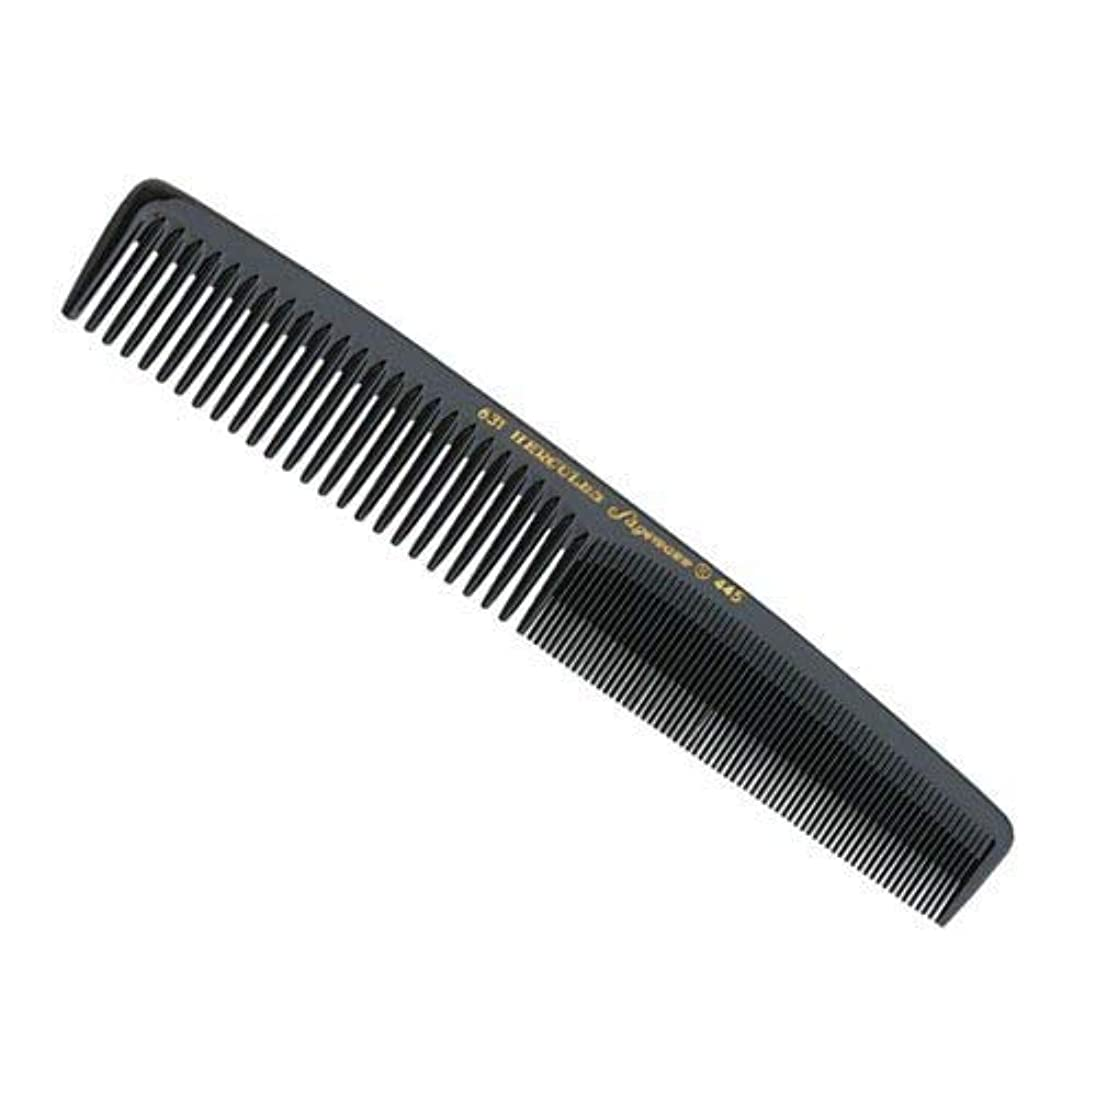 逃れる宣教師人差し指Hercules Sagemann Medium Waver Ladies Hair Comb, Length-17.8 cm [並行輸入品]